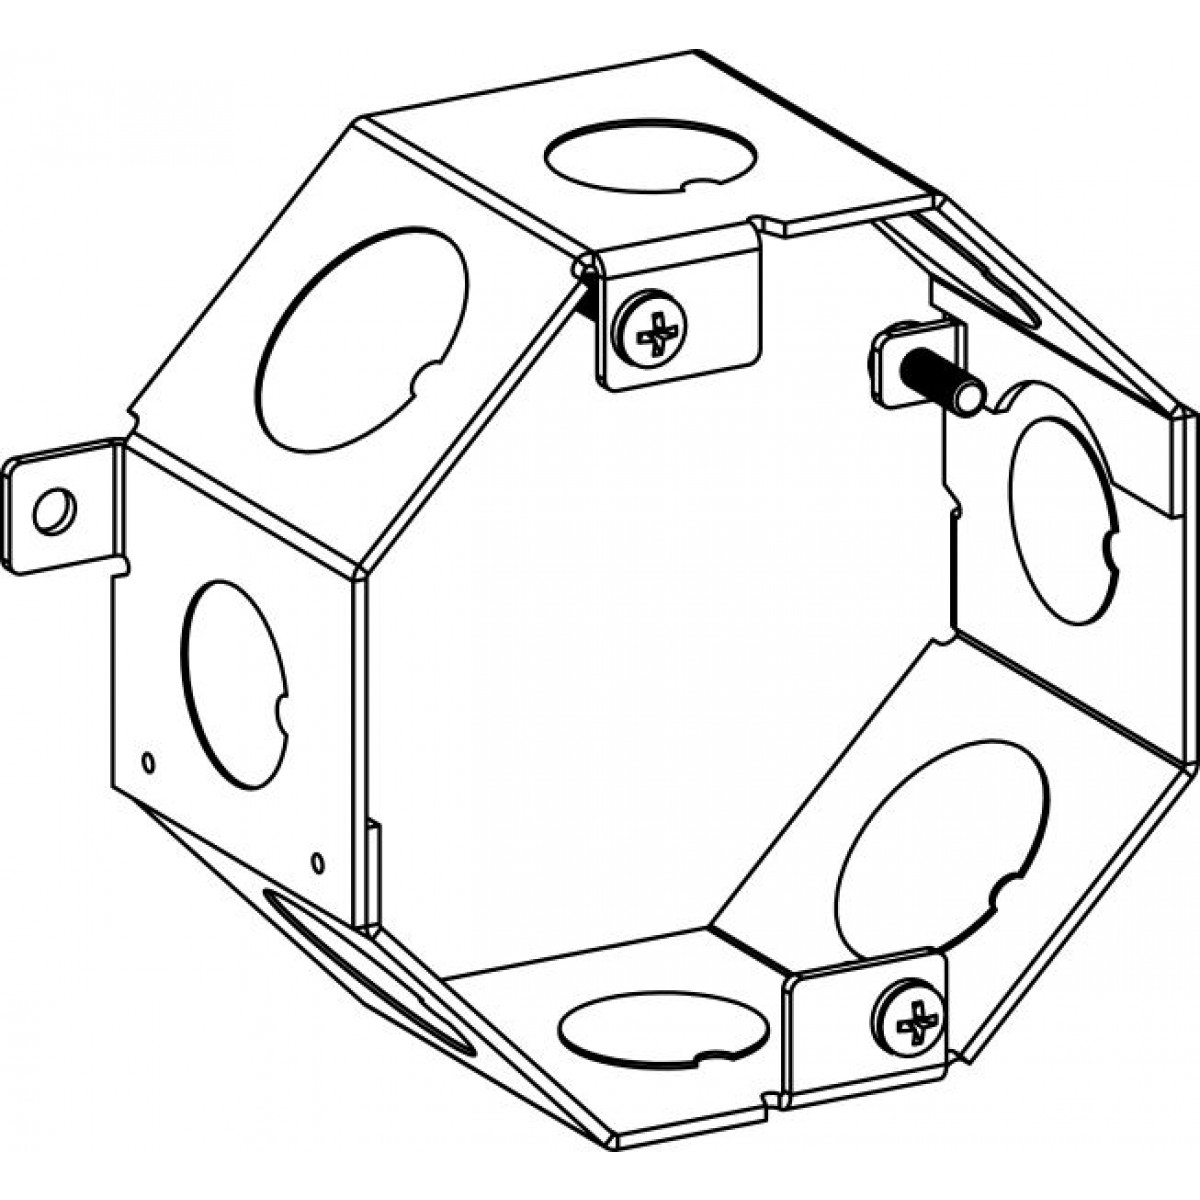 Boxes clipart drawing. At getdrawings com free